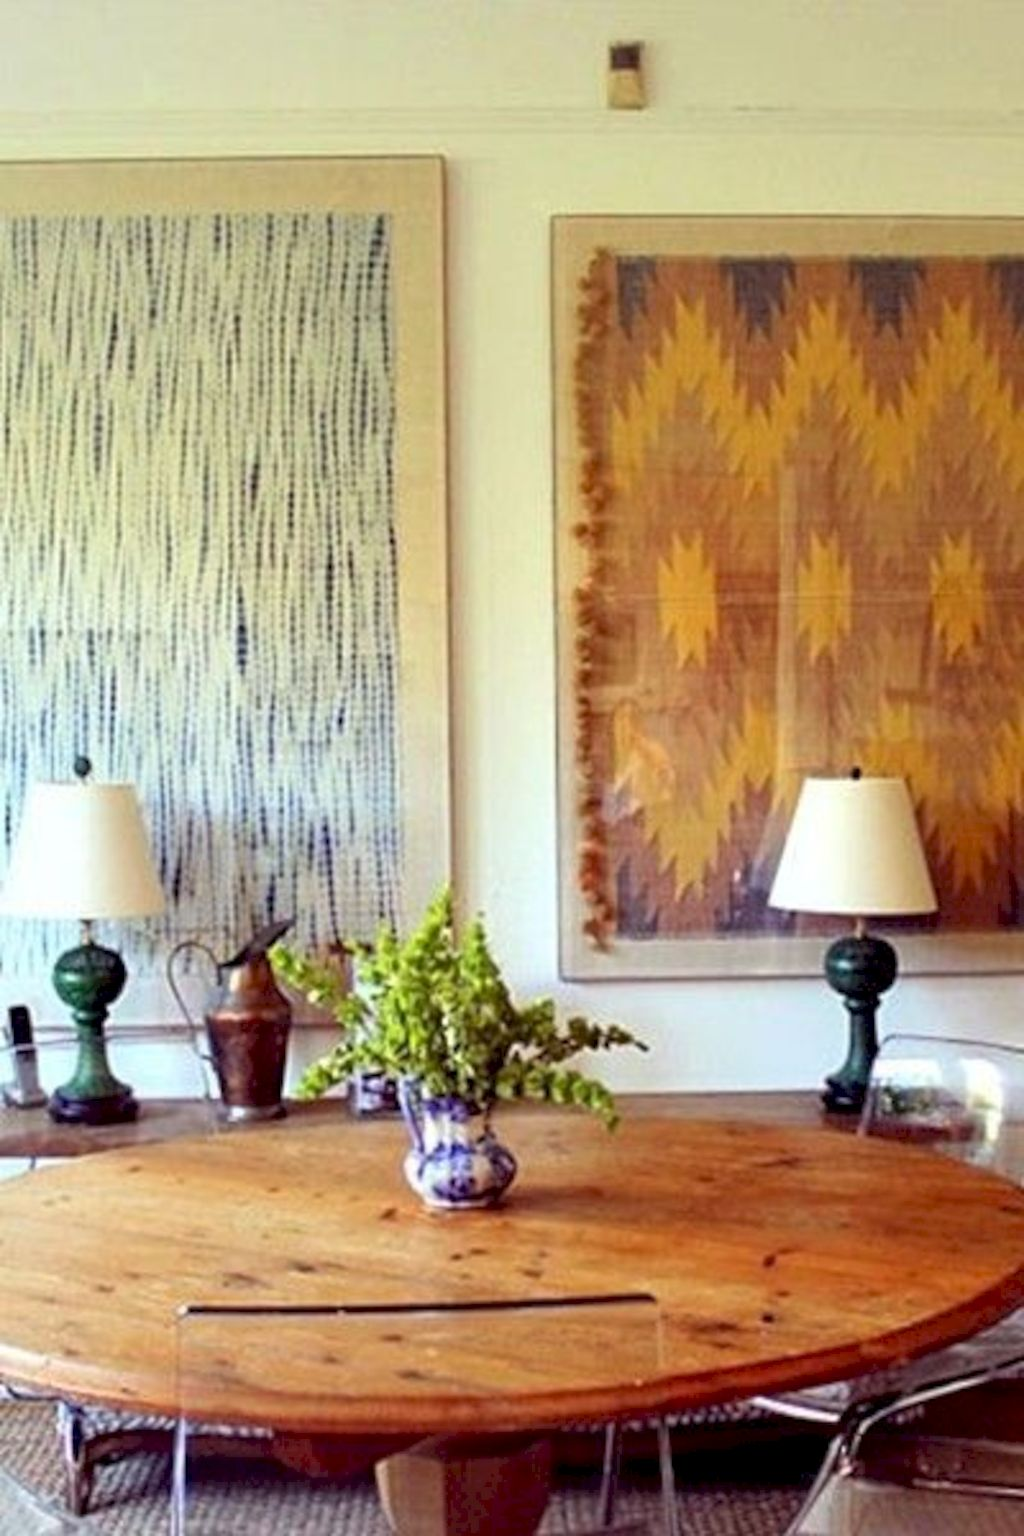 Artistic textile decorations with artsy pattern and print designs amazingly enhance wall display with strong eclectic home style Image 12